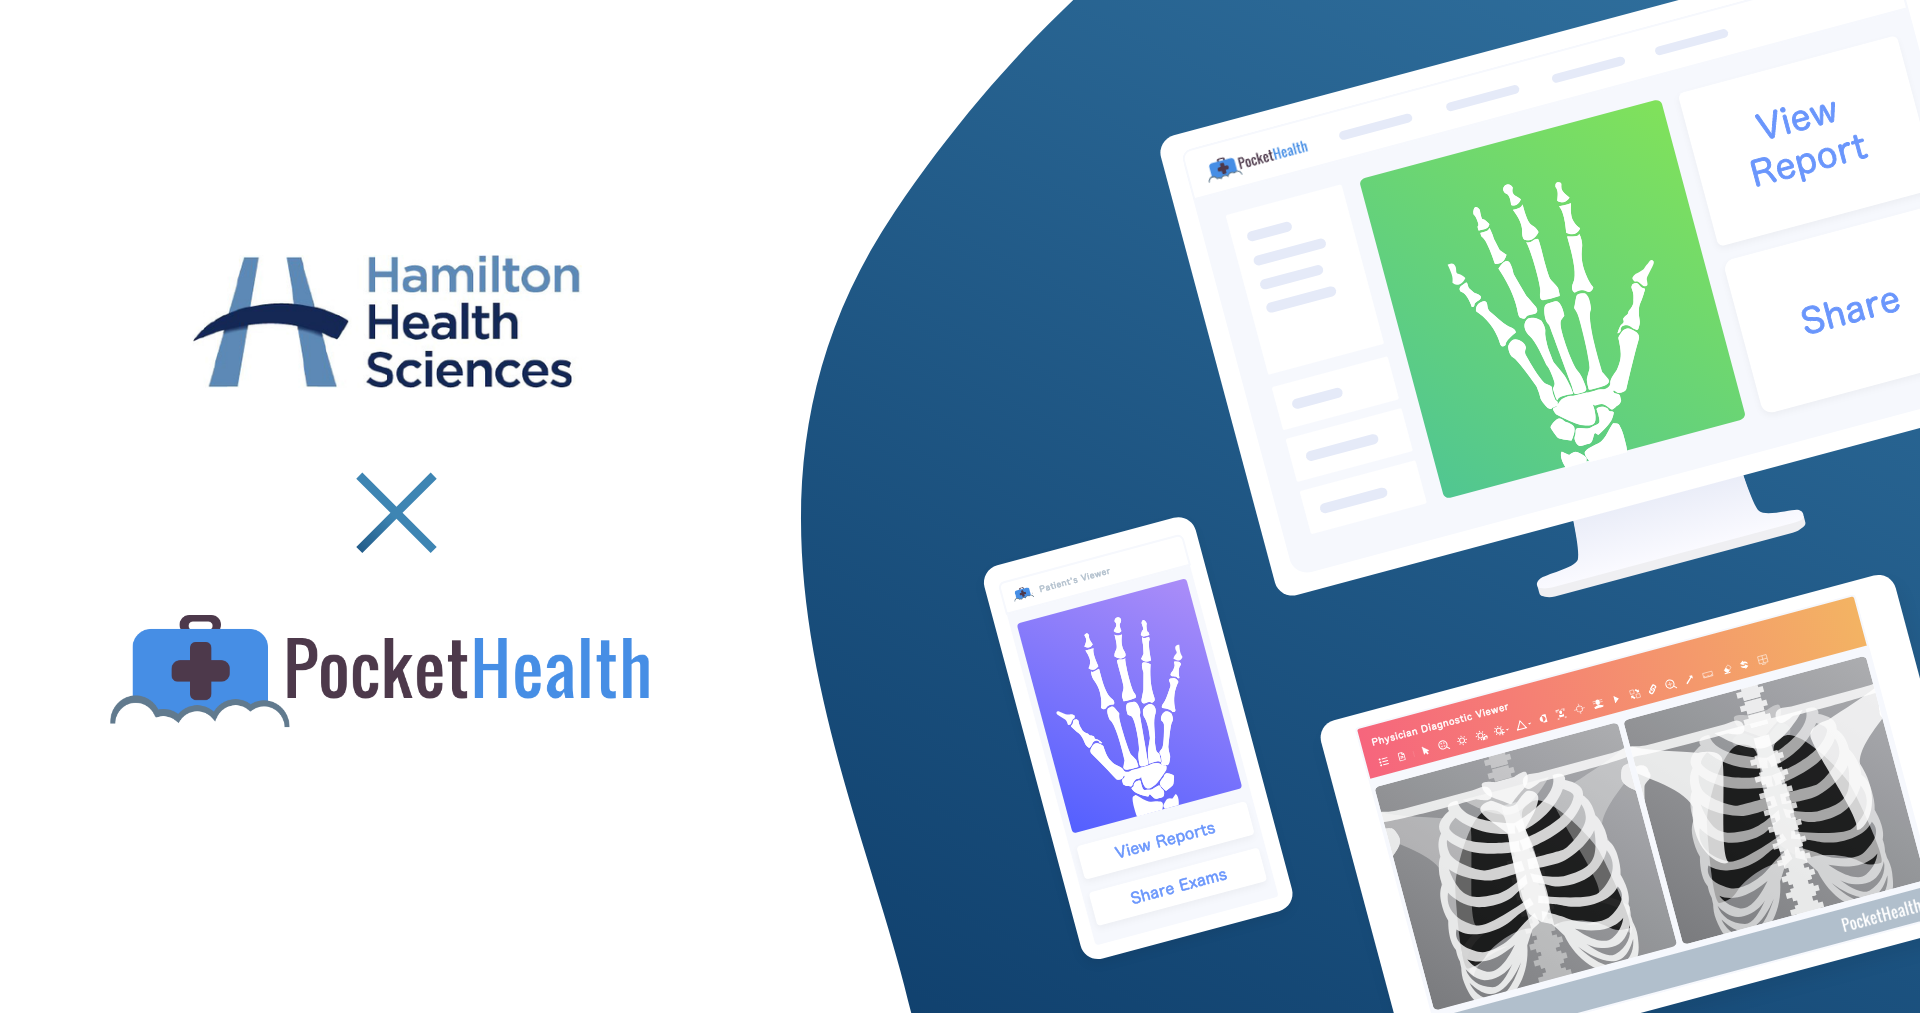 Hamilton Health Sciences Goes Live With PocketHealth, Provides Online Imaging Access for Patients